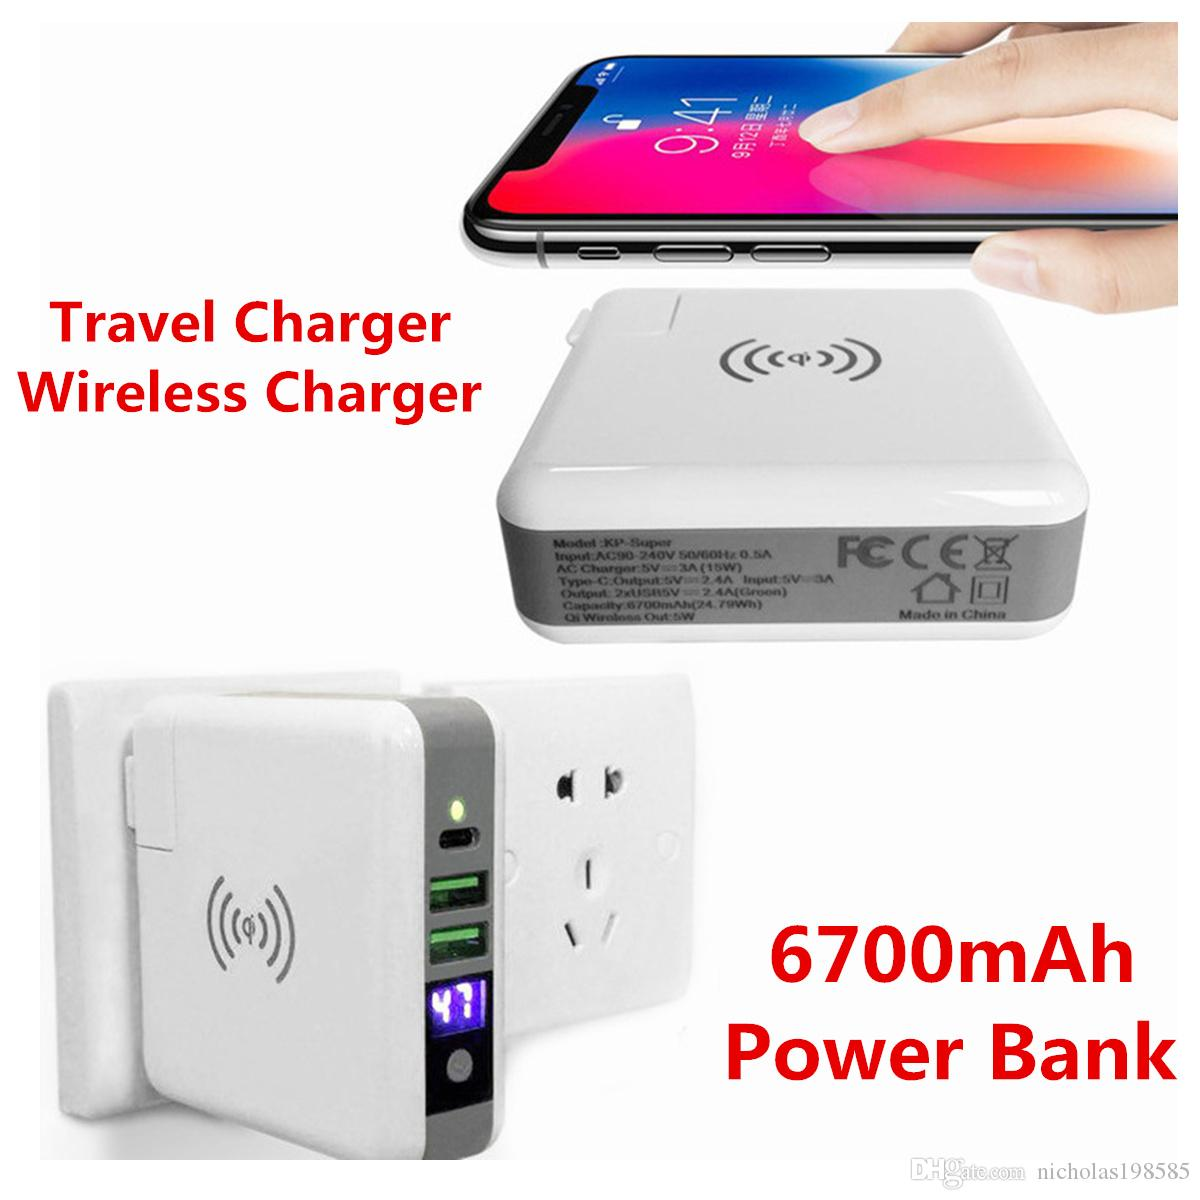 Super Charger3 In 1 Travel Charger Wireless 6700mah Power Mobile Phone Circuit Diagram Bank For Smart Phones Universal Qi Samsung Iphone X